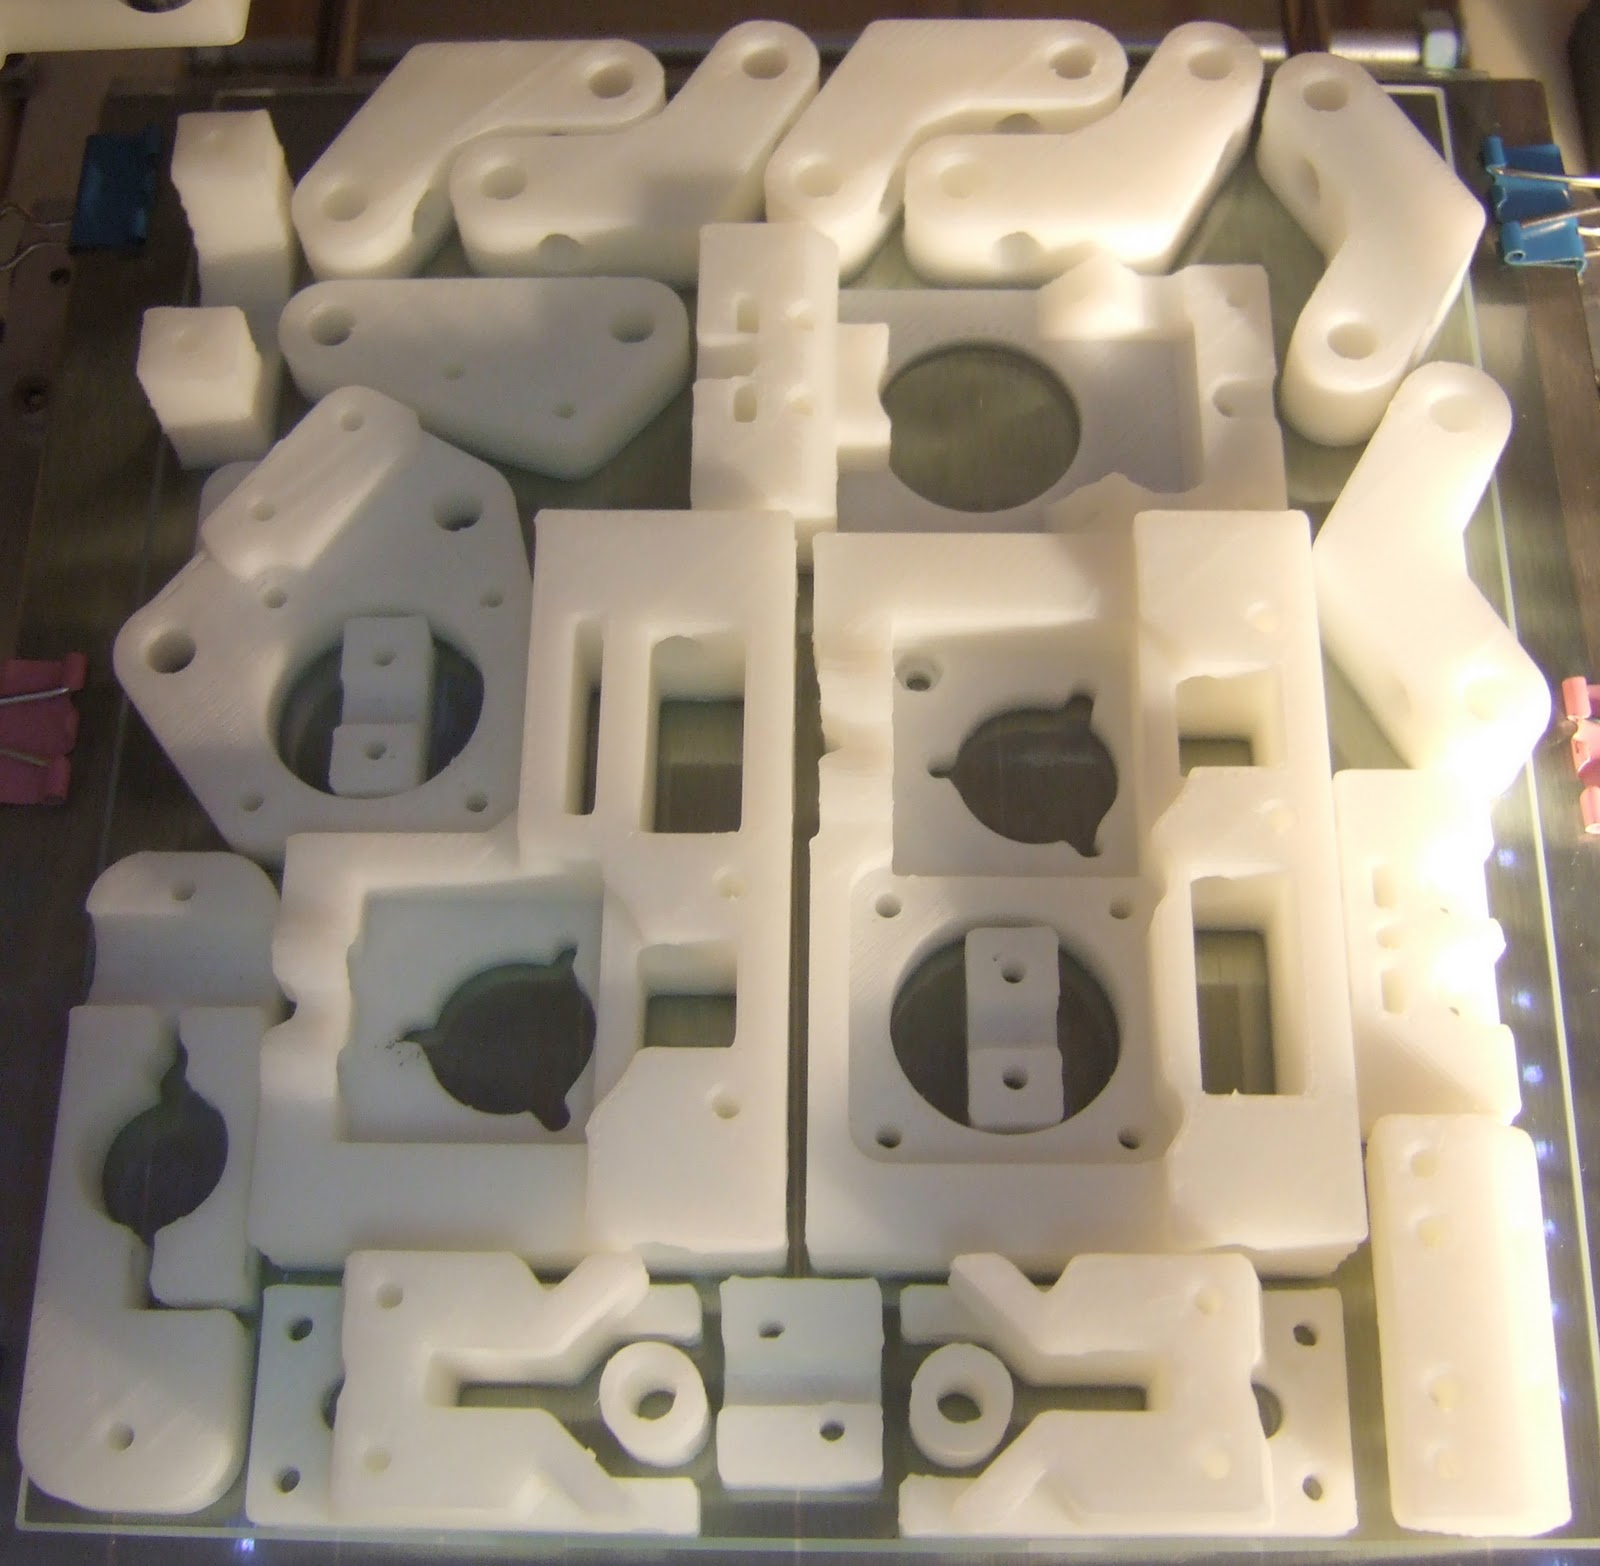 Nophead's plate of Huxley RepRap parts